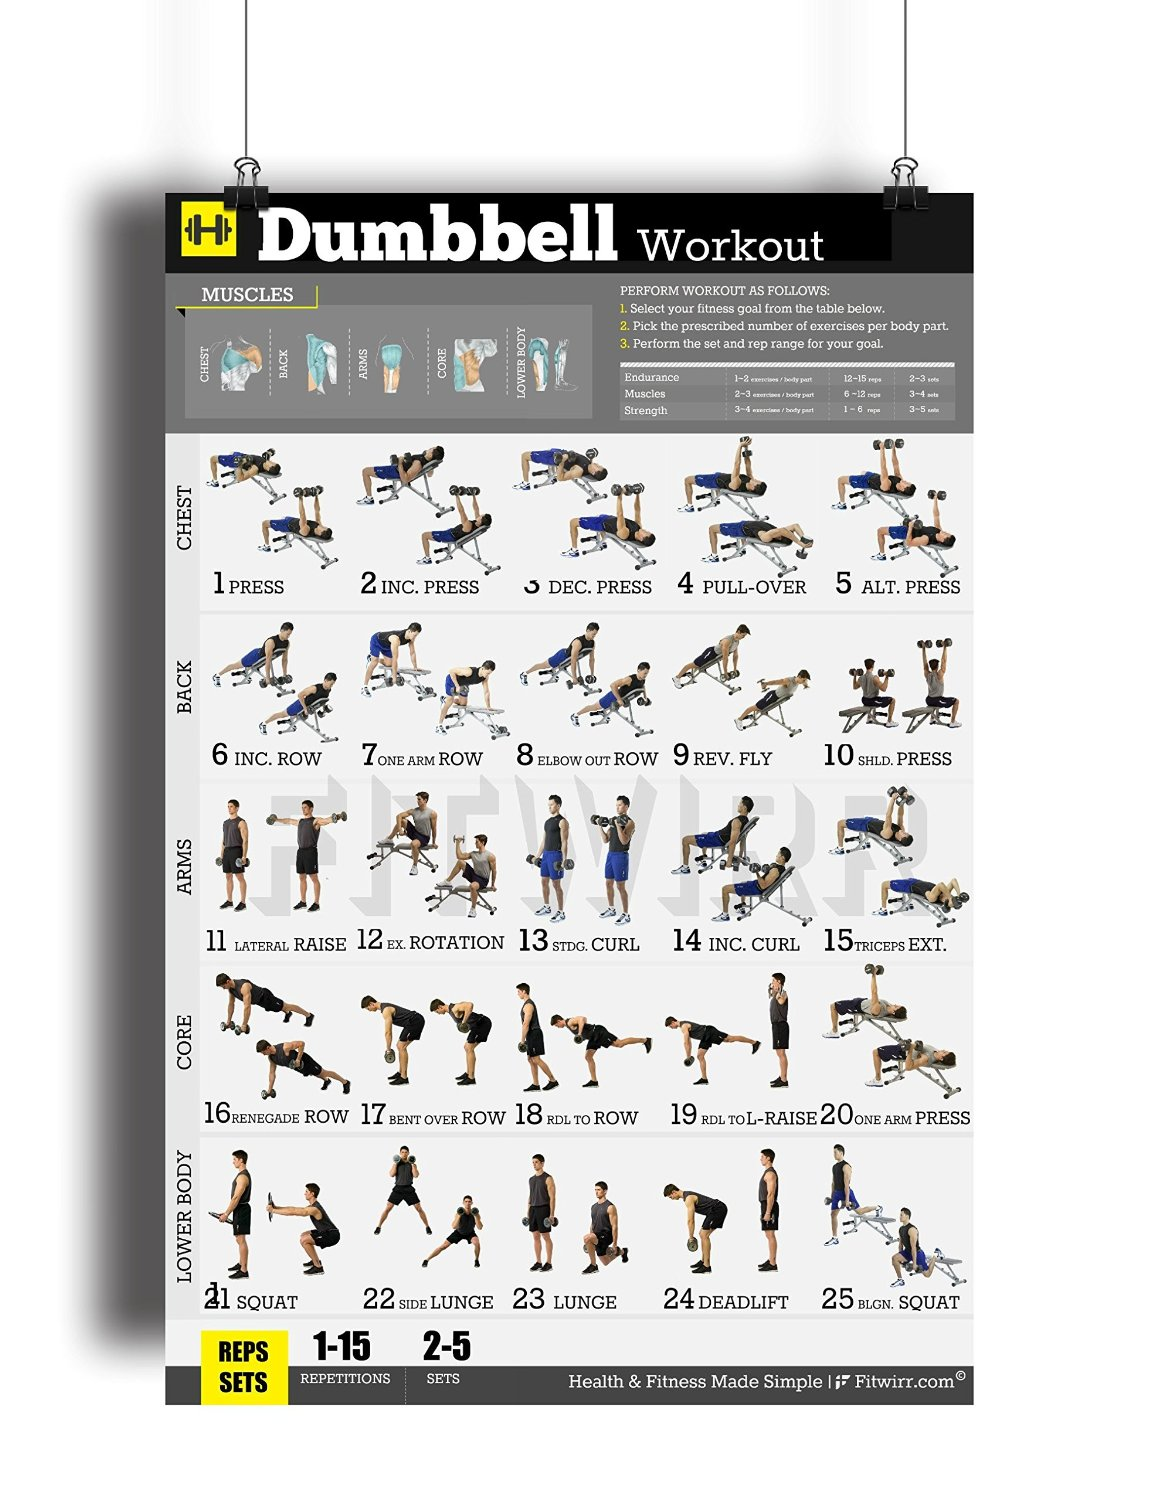 """Dumbbell Exercises Workout Poster - NOW LAMINATED - Home Gym - Workout Plans for Men - Free Weights - Strength Training Routines - Build Muscles - Fat Loss - Fitness - Bodybuilding Guide 18""""X24"""""""